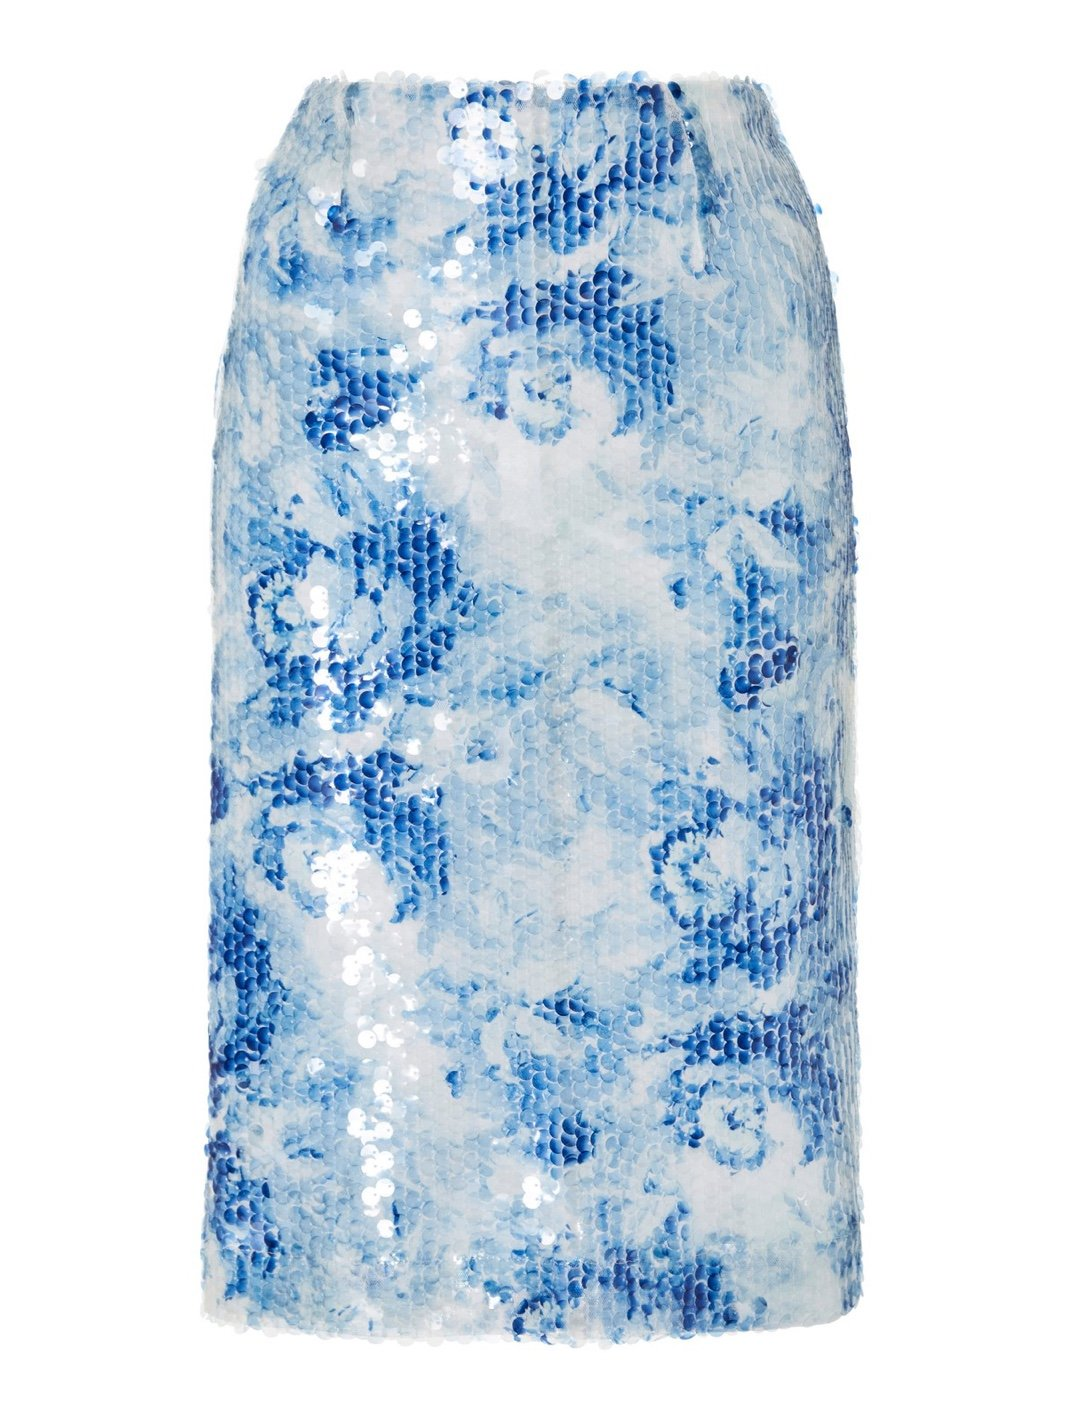 Araka Sequins Pencil Skirt - The Bobby Boga